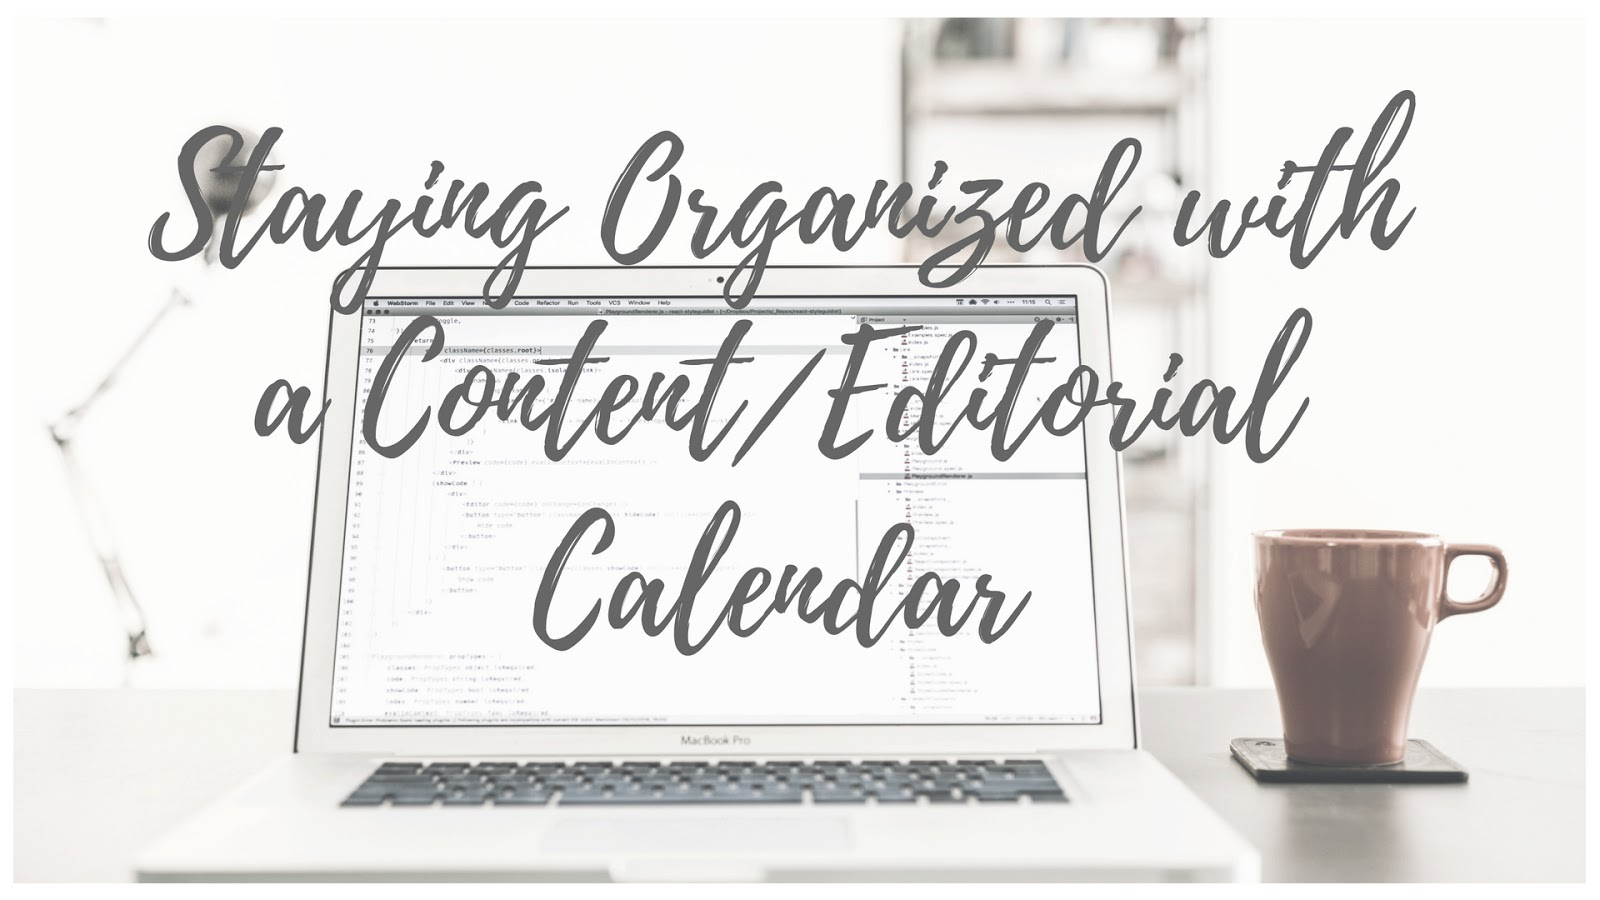 Why should you use a content calendar for your blog?